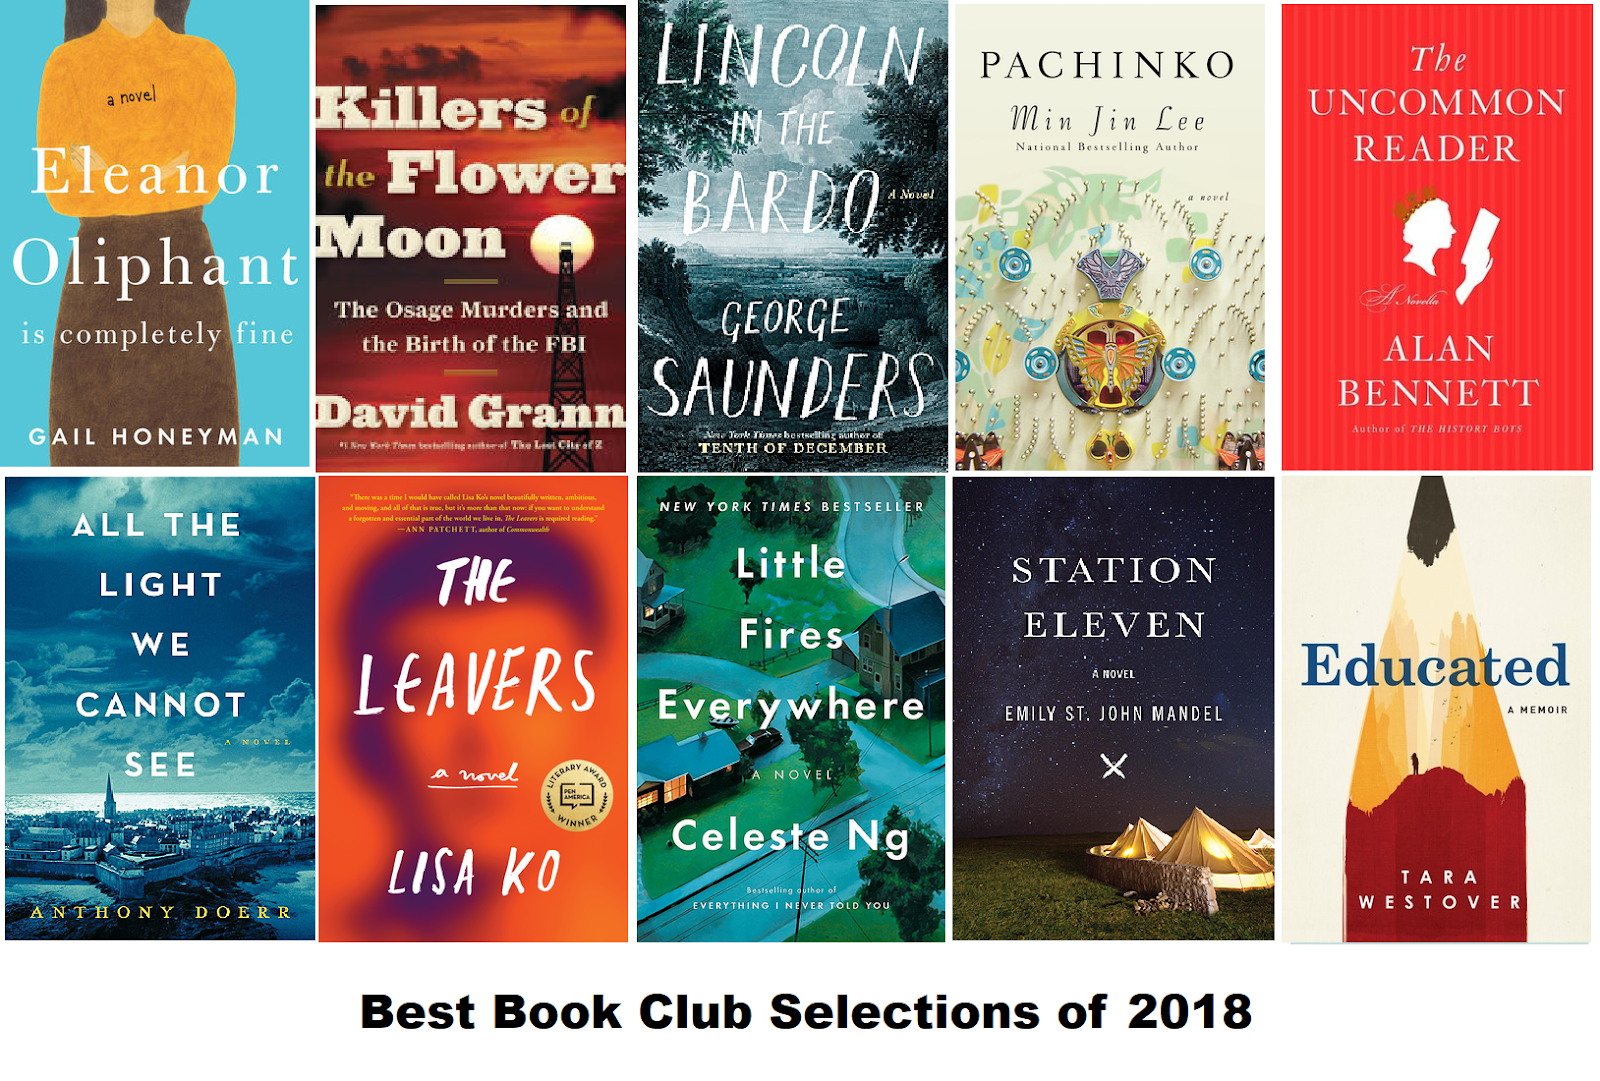 Best Books For Book Clubs 2019 My Head Is Full of Books: Best Book Club Selections of 2018